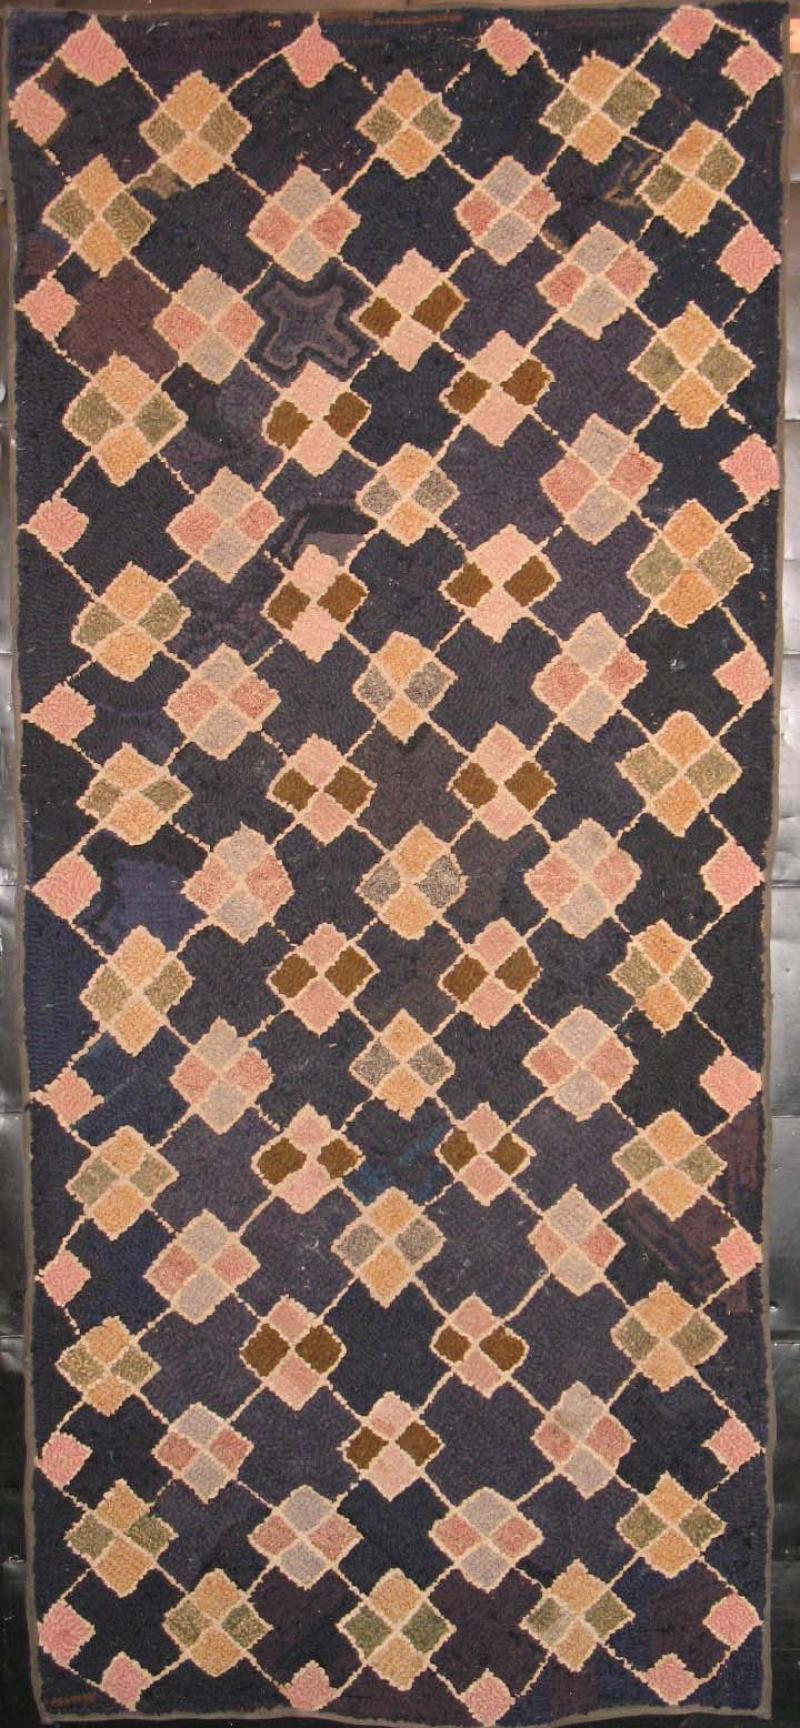 ARGYLE' FOUR PATCH DIAMONDS HOOKED RUG